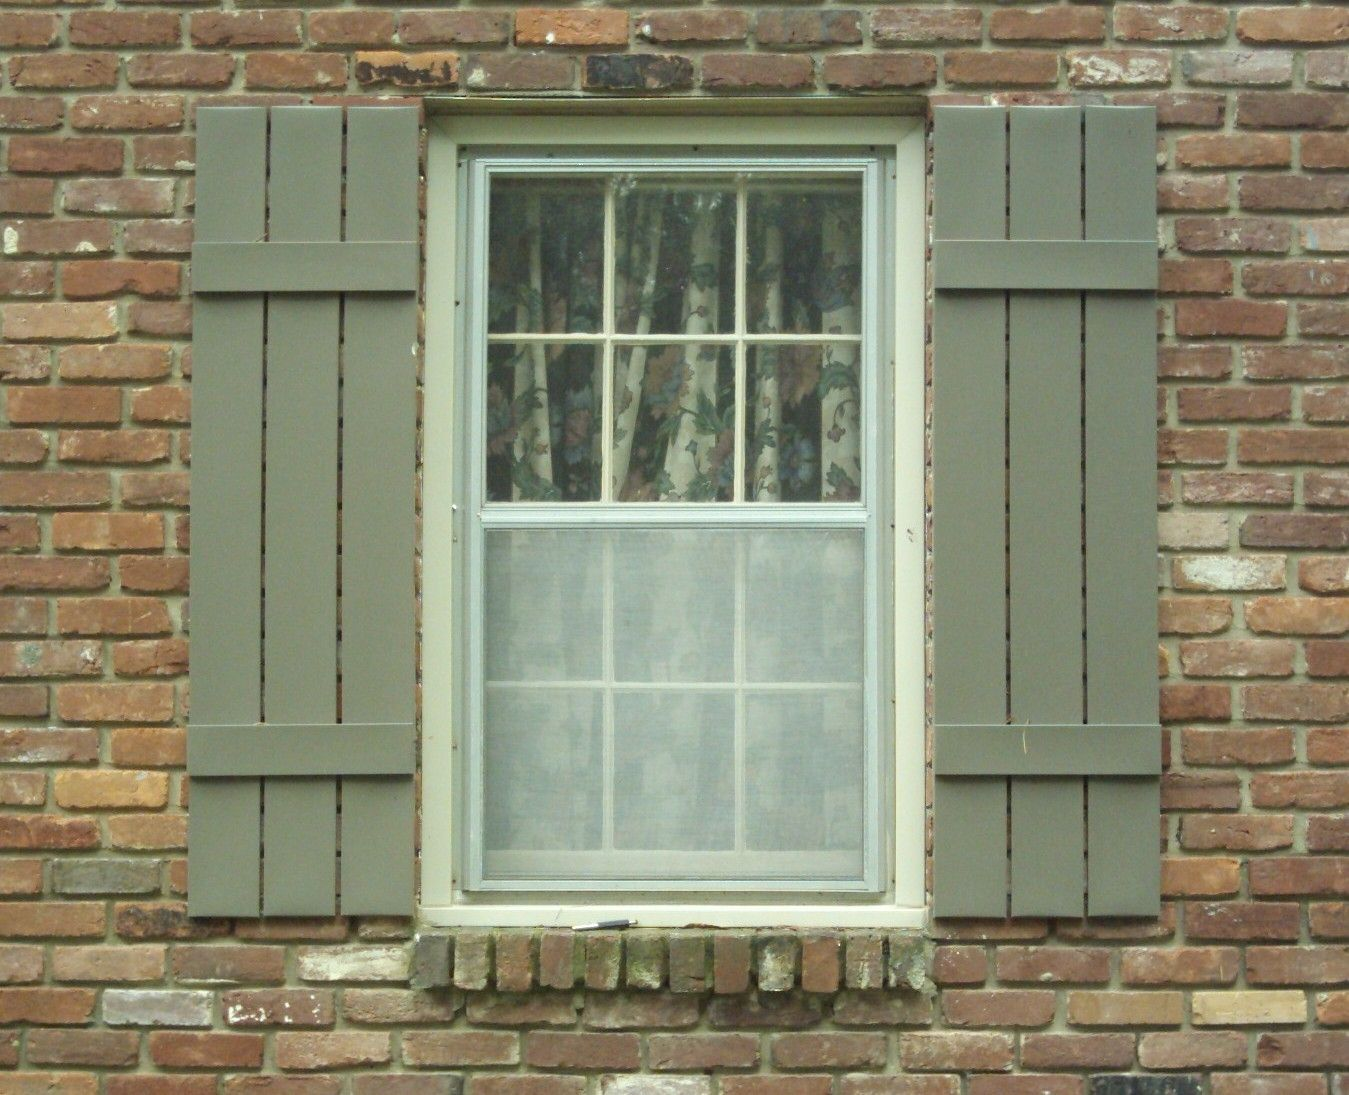 Wooden slat shutters shutters and hardware pinterest window shutters exterior window and - Paint exterior wood set ...